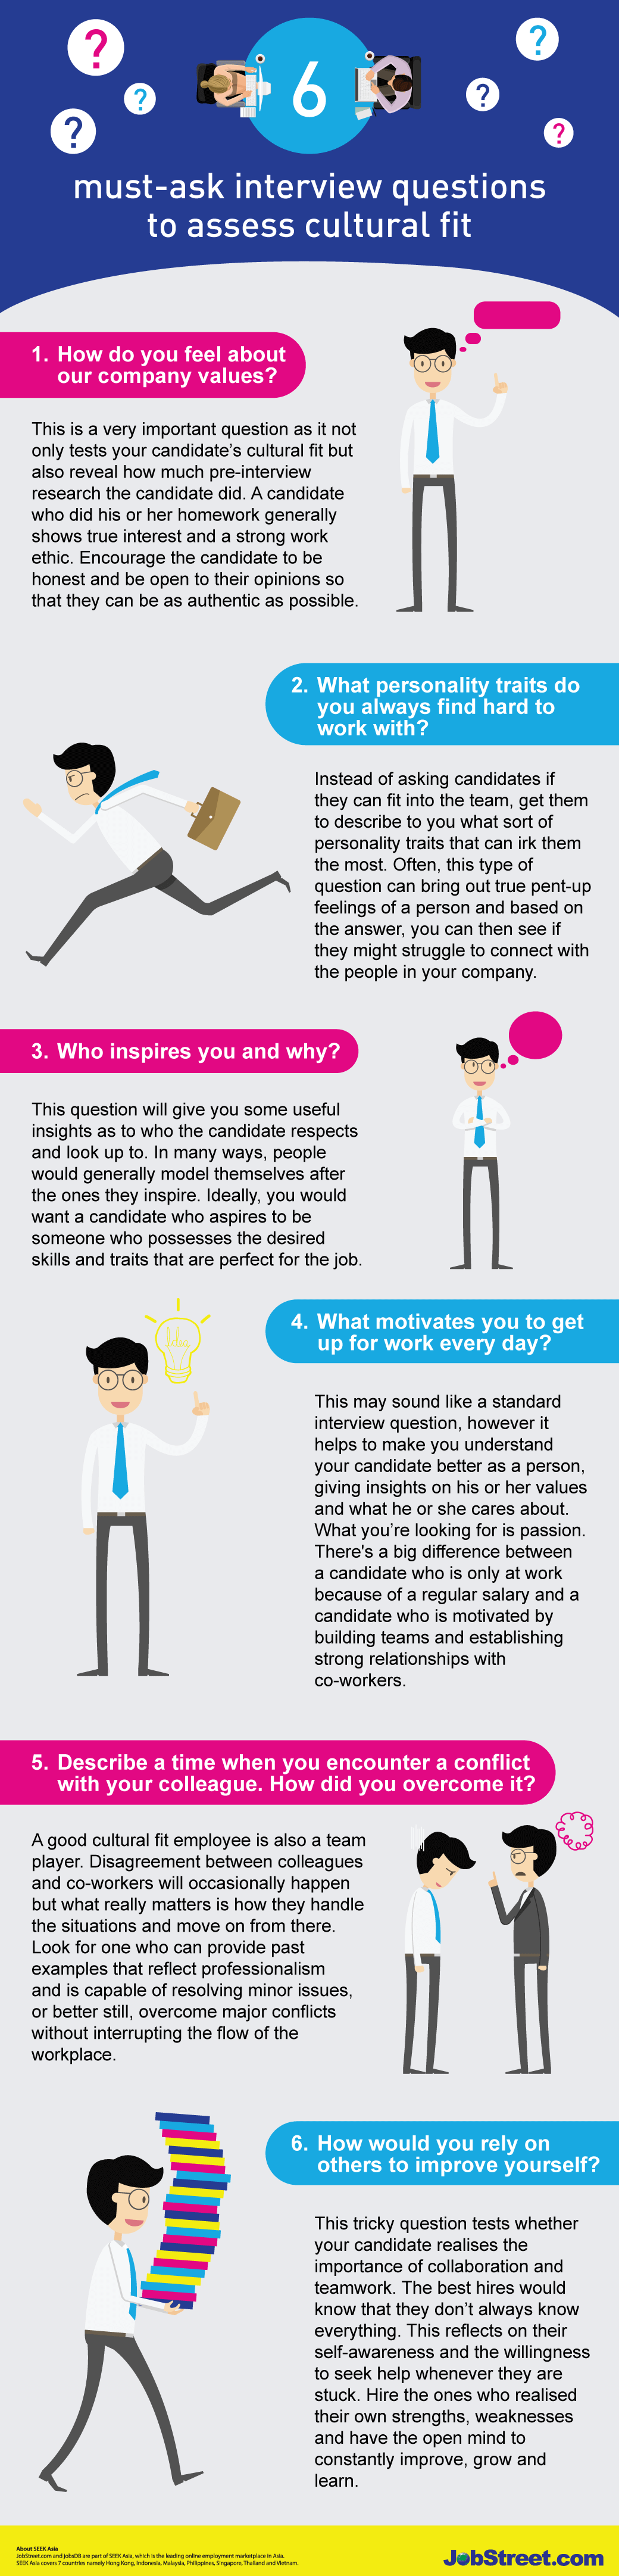 Infographic 6 Must Ask Interview Questions To Assess